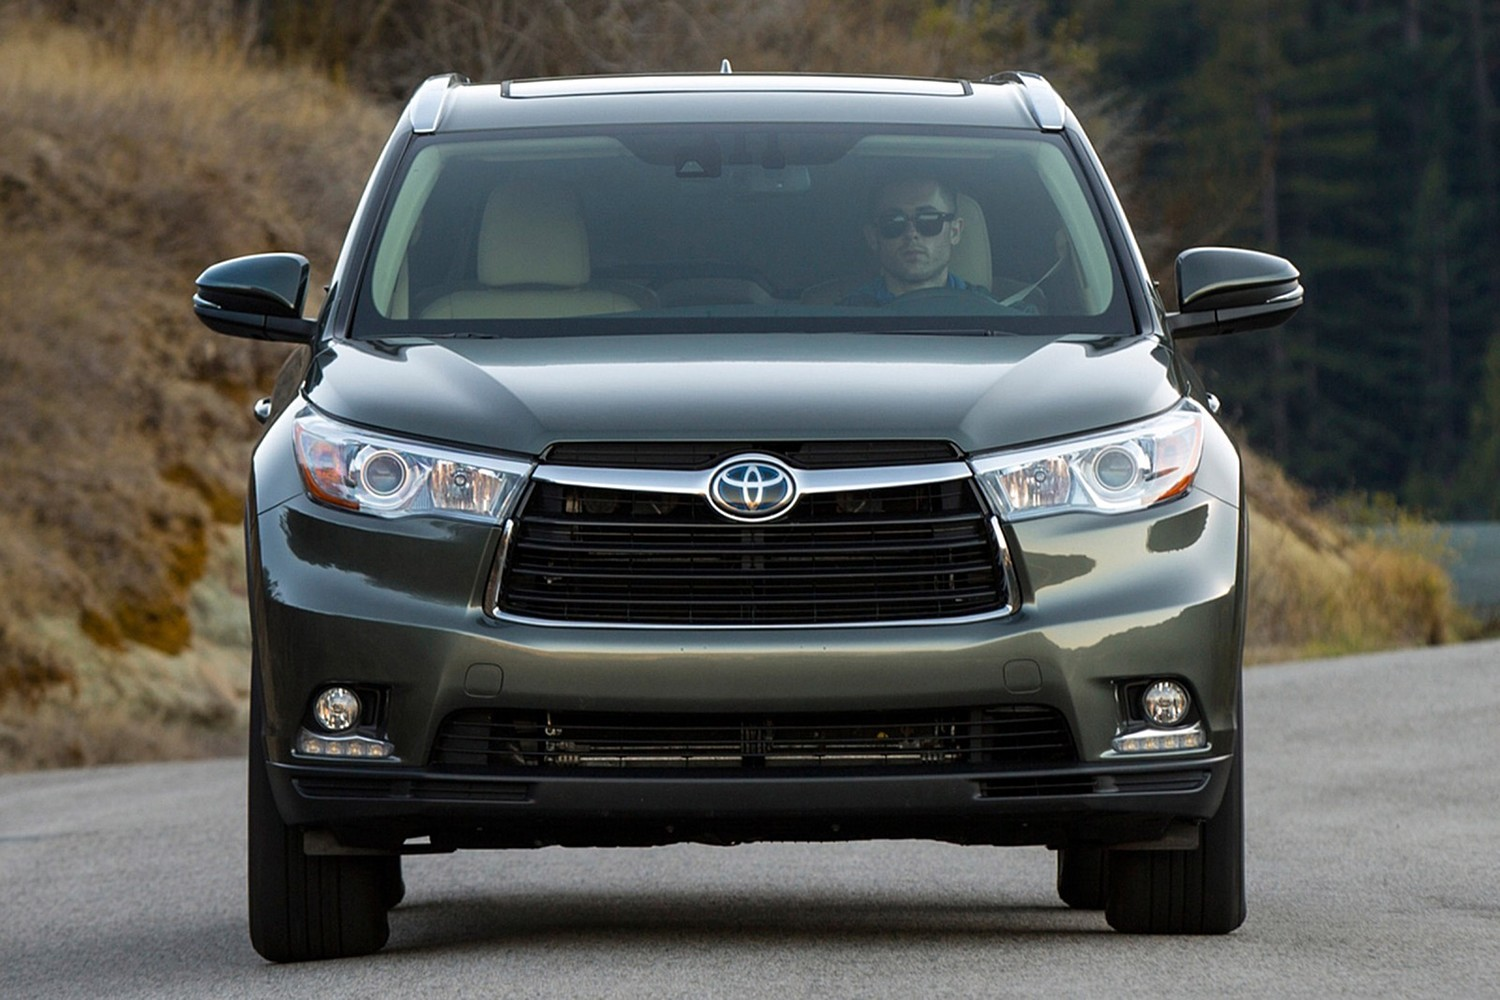 2015 toyota highlander hybrid suv vehie. Black Bedroom Furniture Sets. Home Design Ideas